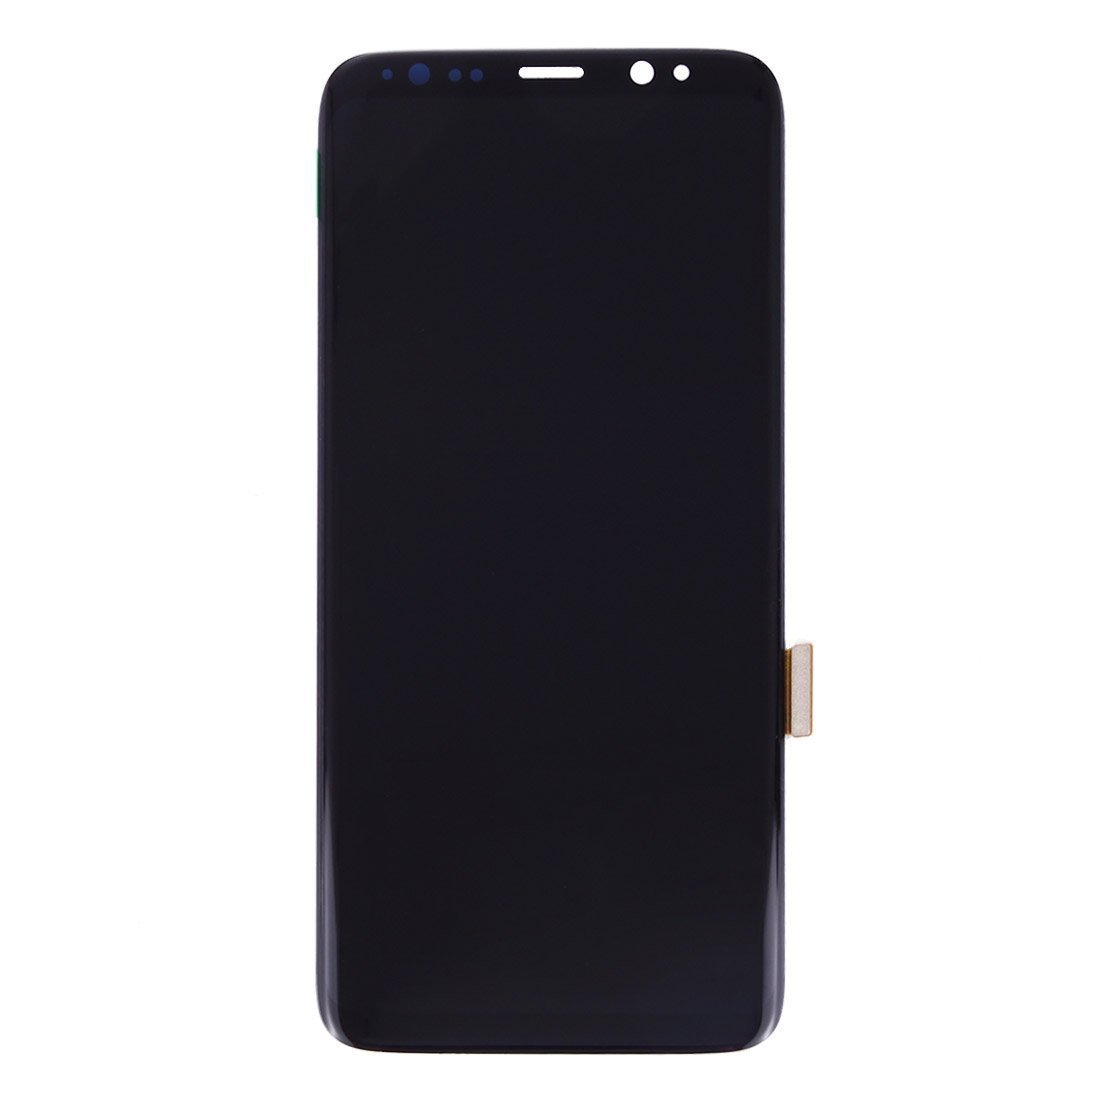 Samsung Galaxy S8 Screen Replacement - Black